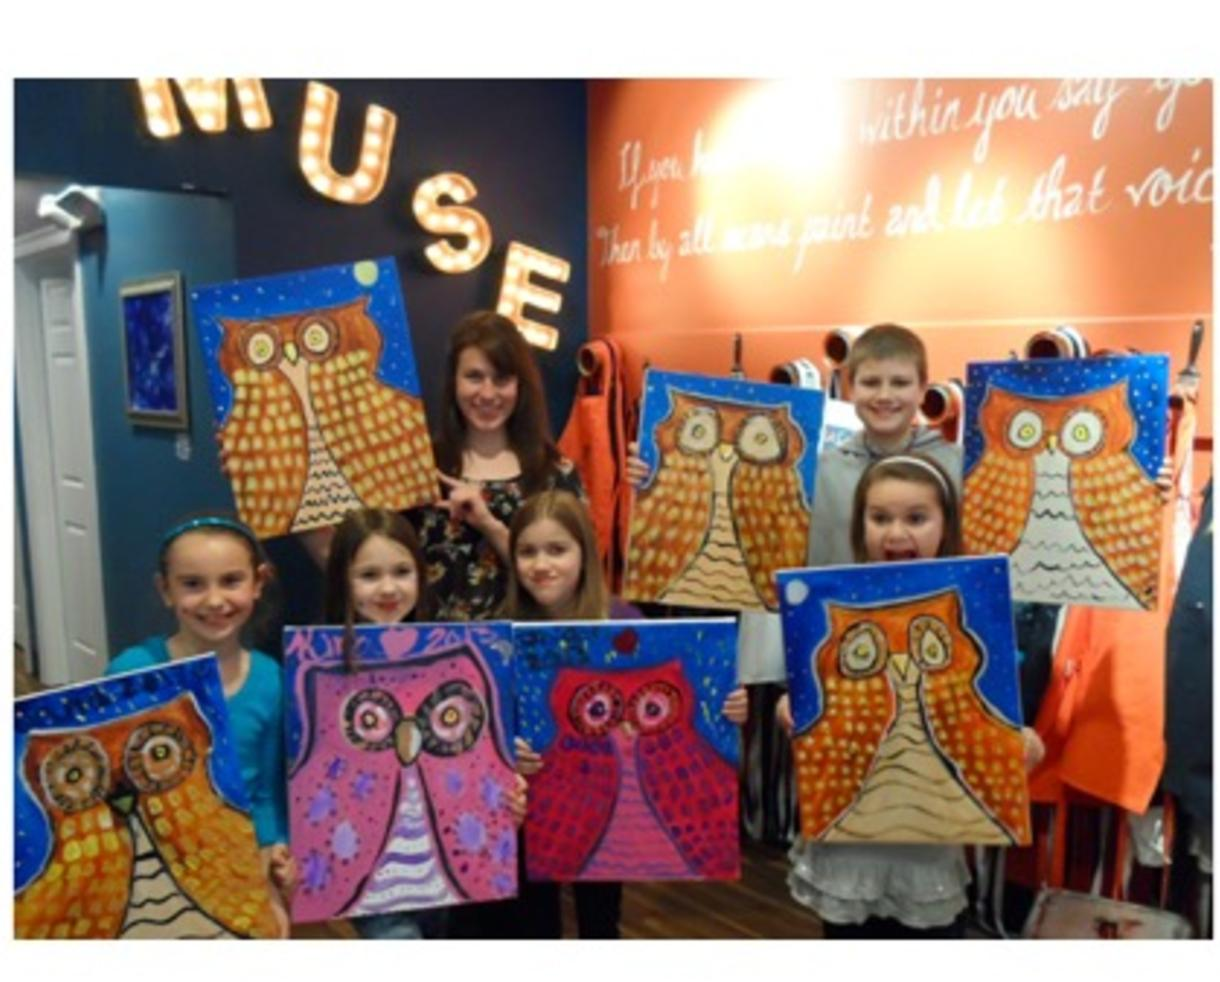 Deal 250 For Painting Party For Up To 10 People At The